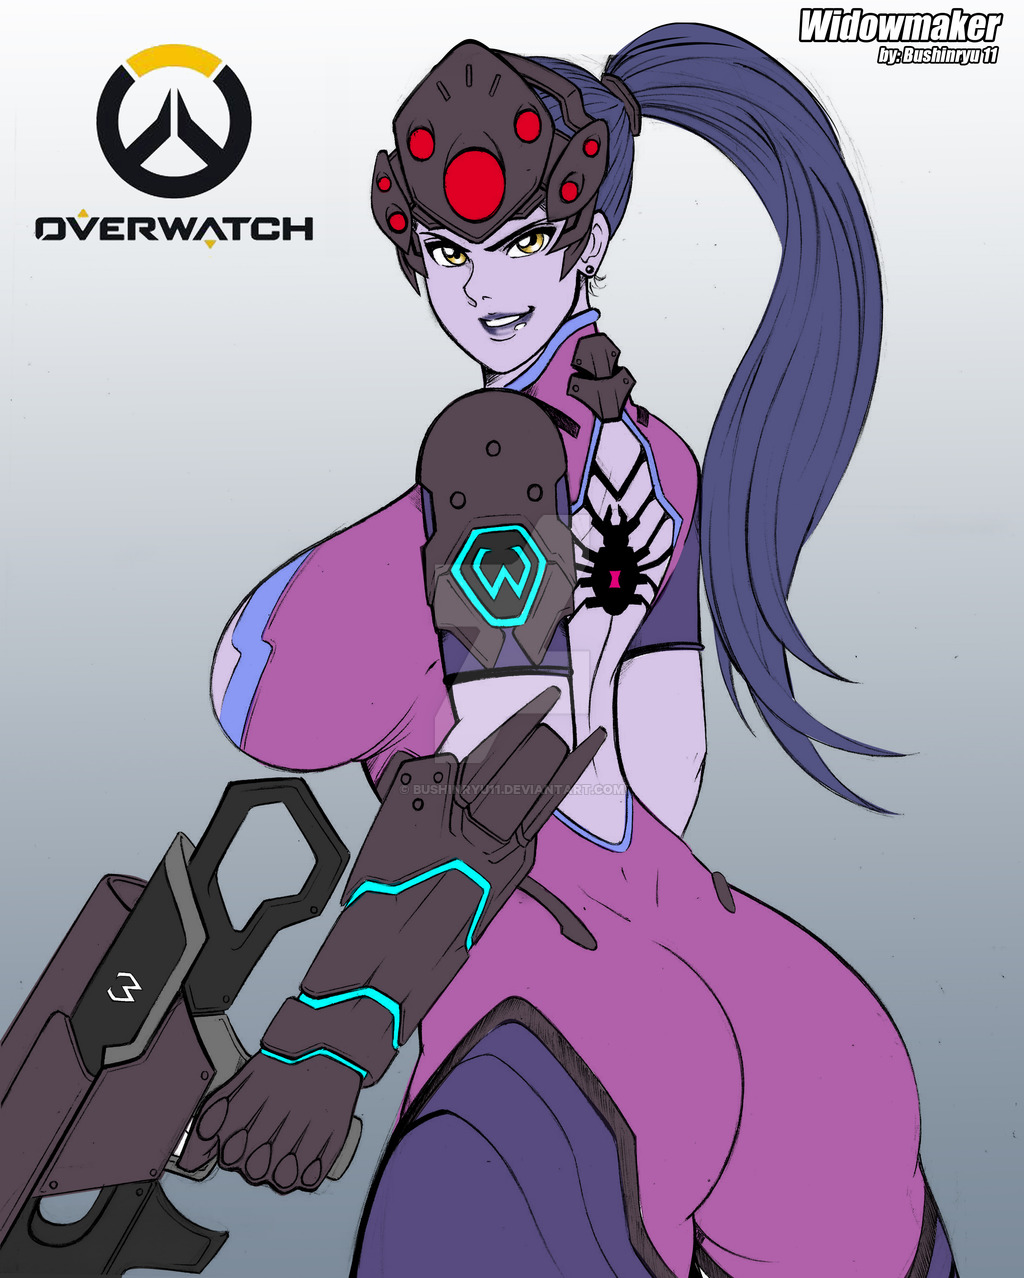 widowmaker_overwatch_fanart_by_bushinryu11_d9yanj7